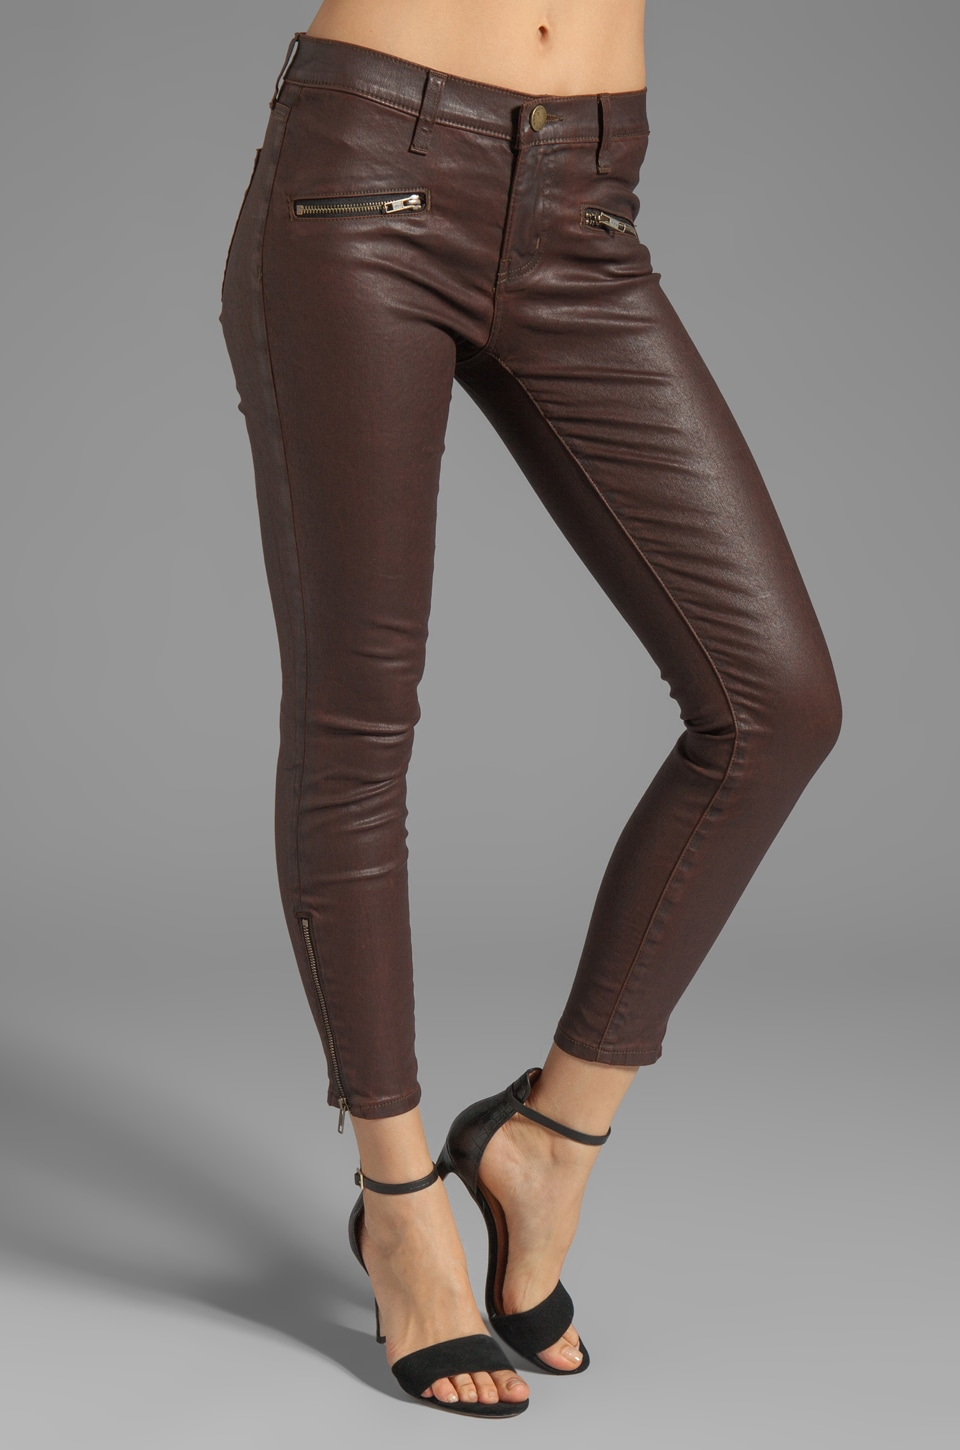 Current/Elliott The Soho Zip Stiletto in Brown Coated